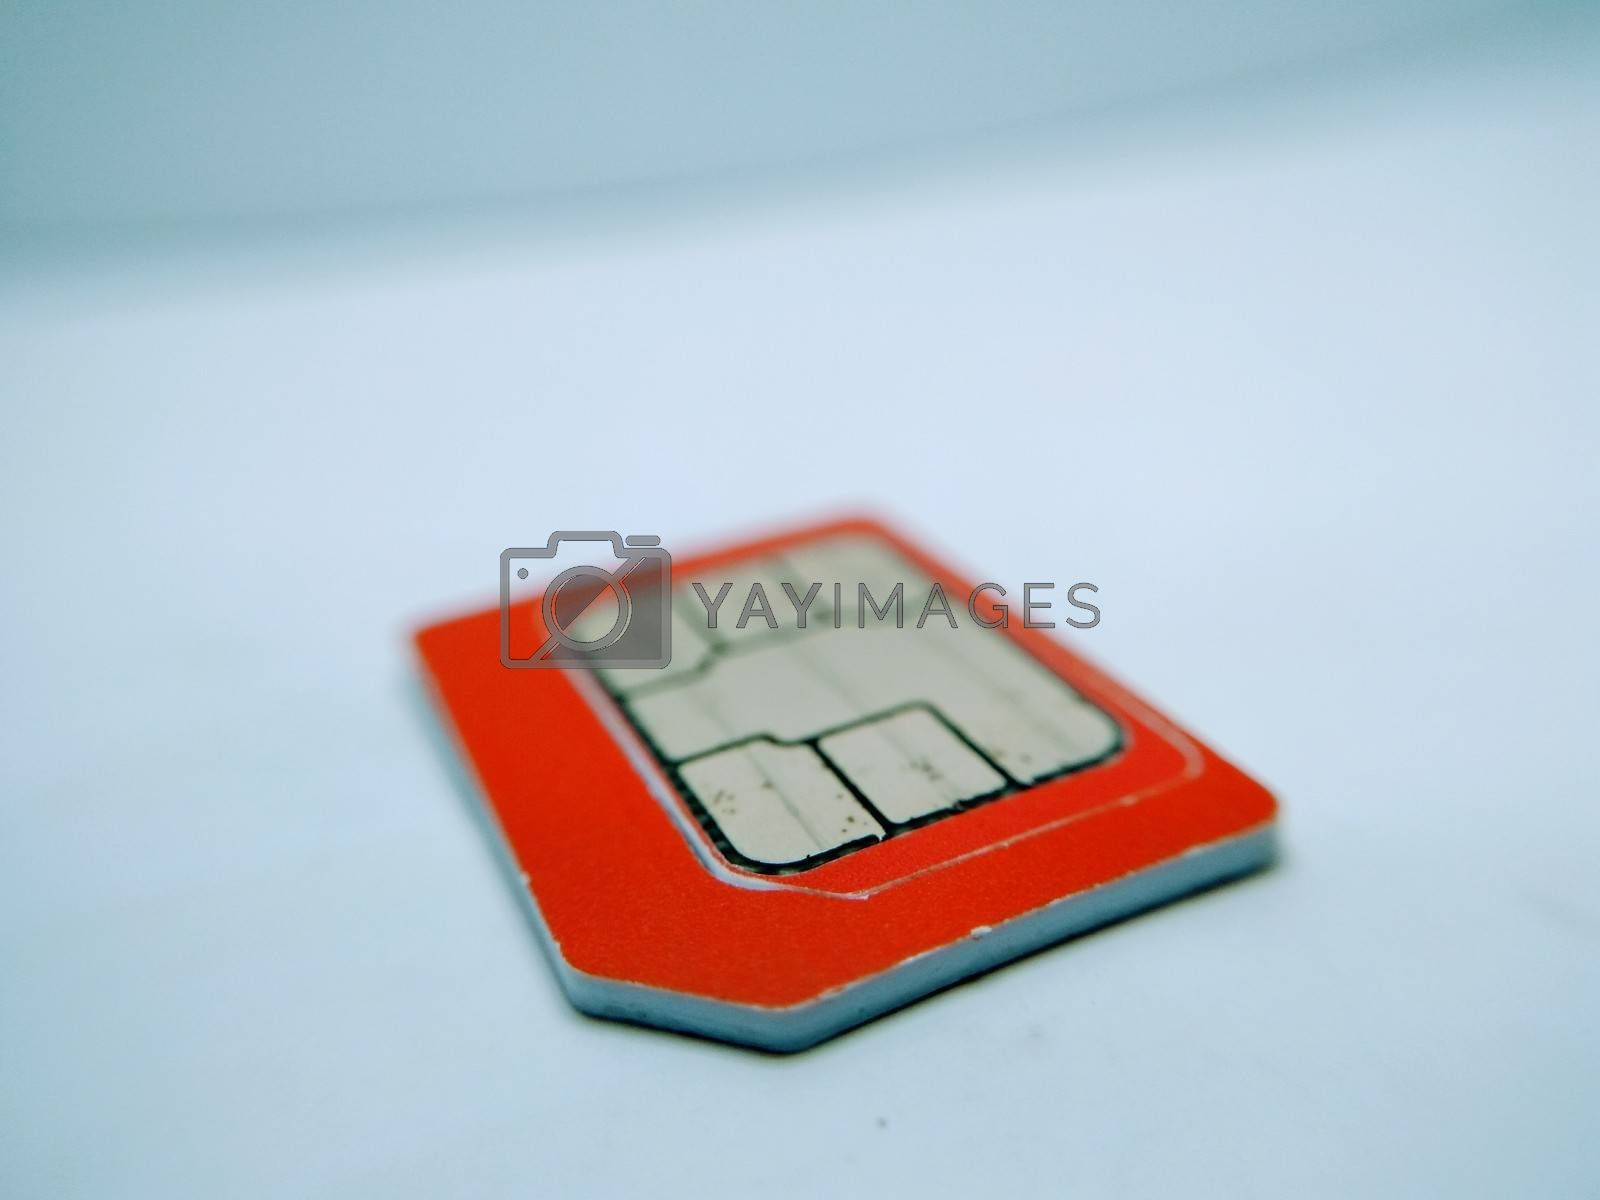 A picture of sim card